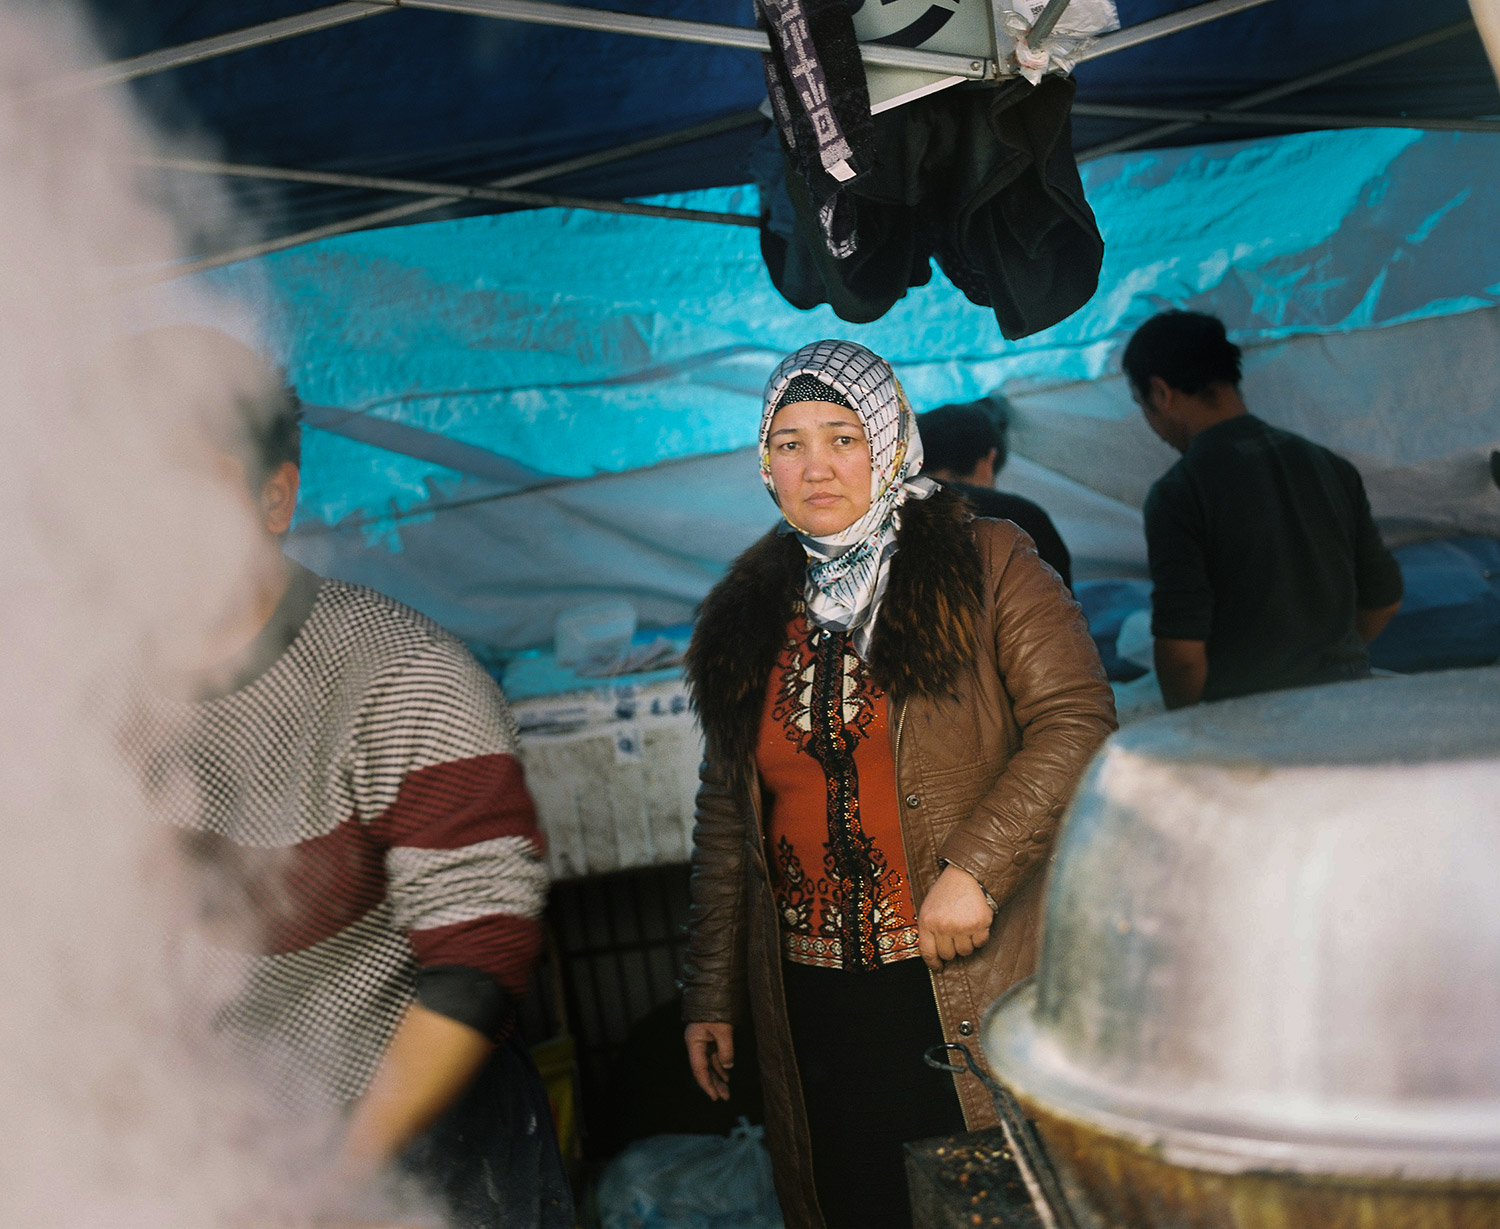 A muslim woman preparing food at the friday market near the Shanghai Mosque